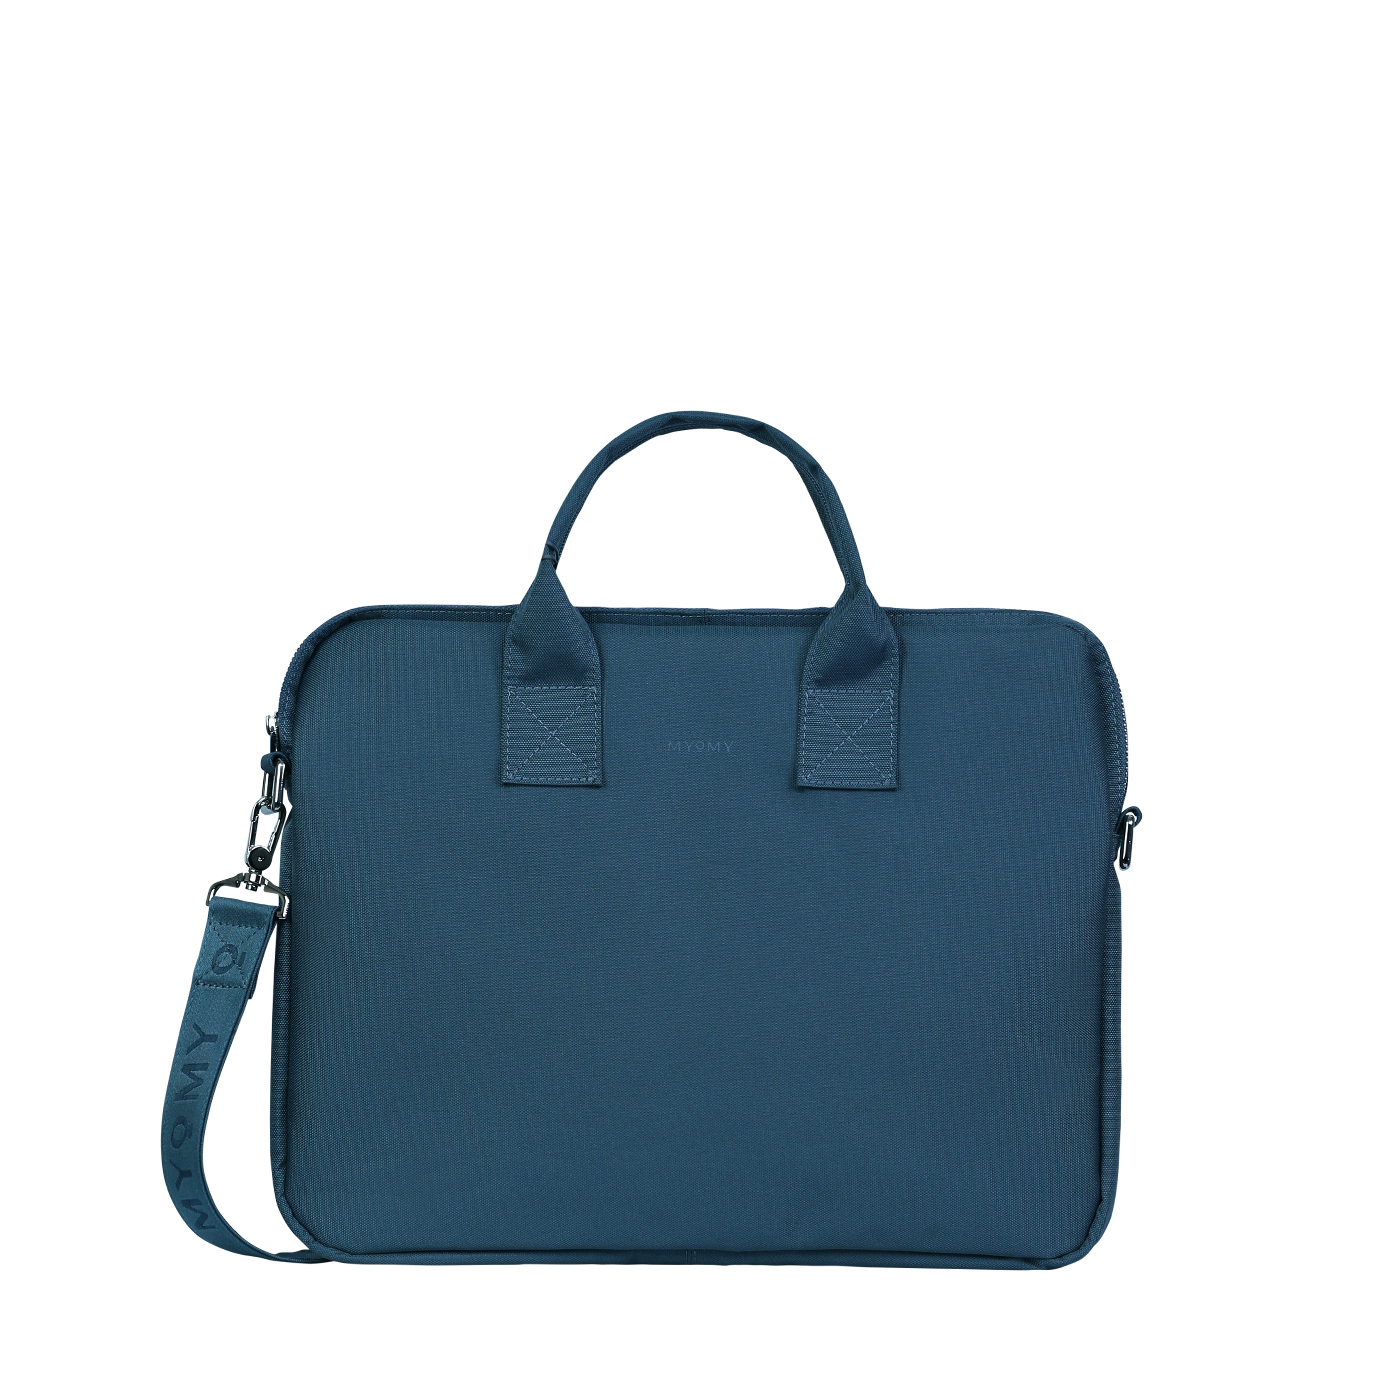 MY PHILIP BAG Laptop – RPET Blue